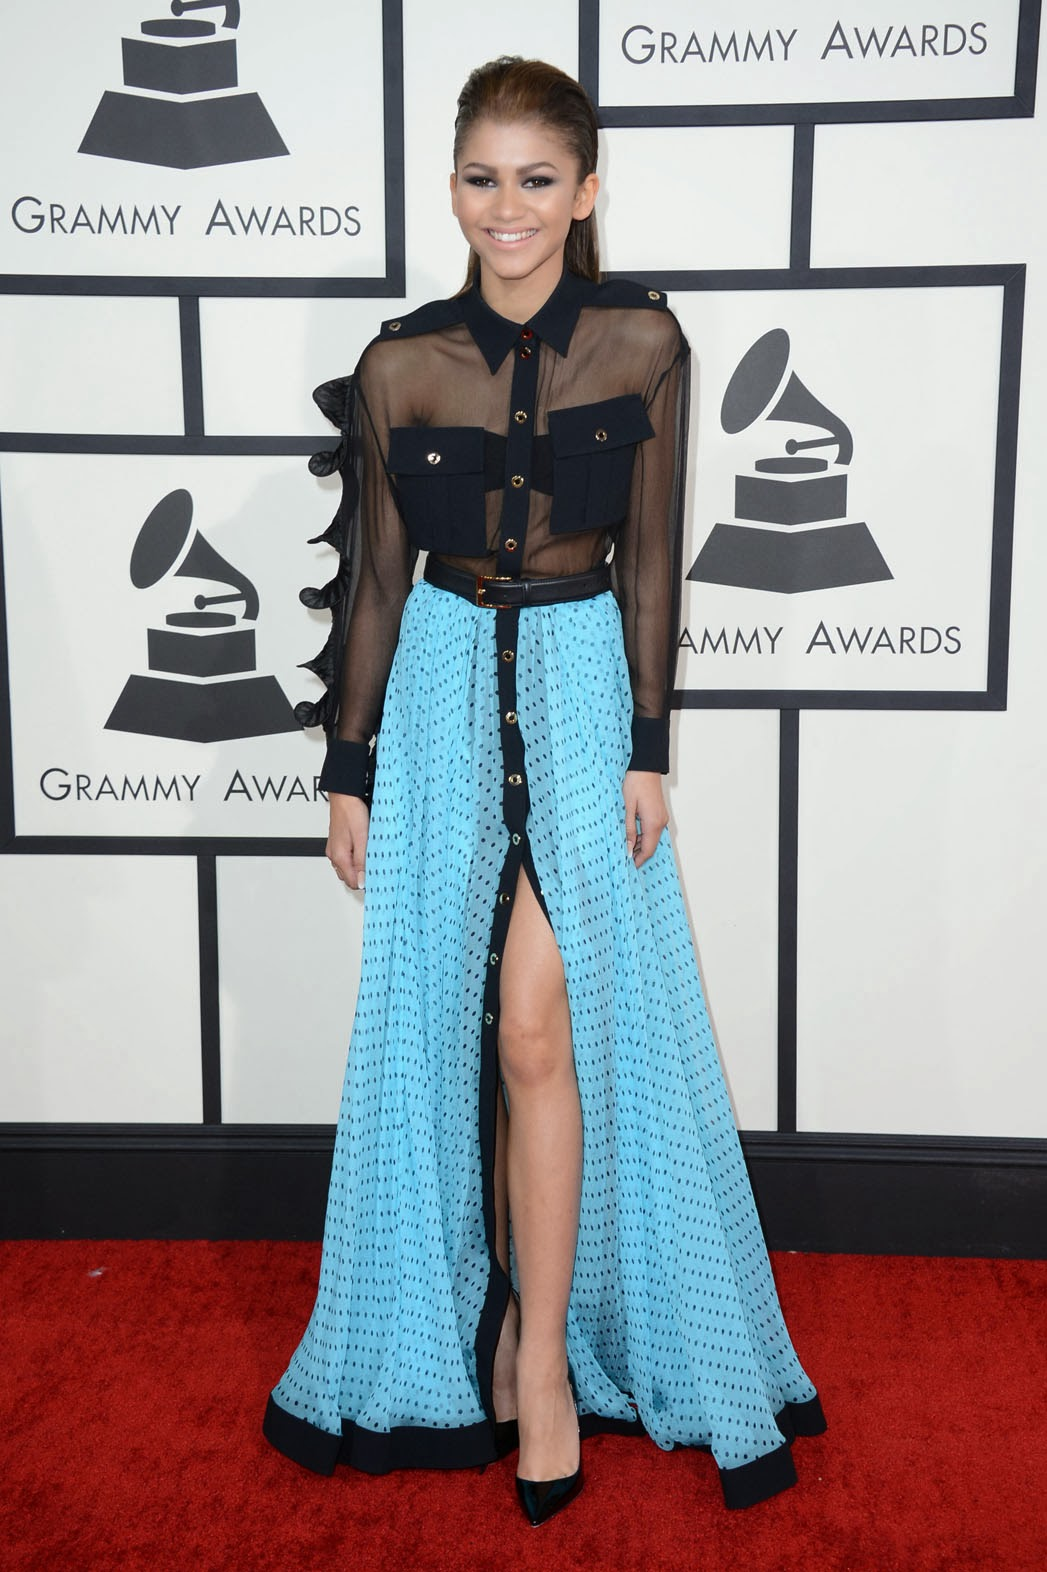 Nude dominates at the 56th Annual GRAMMY Awards